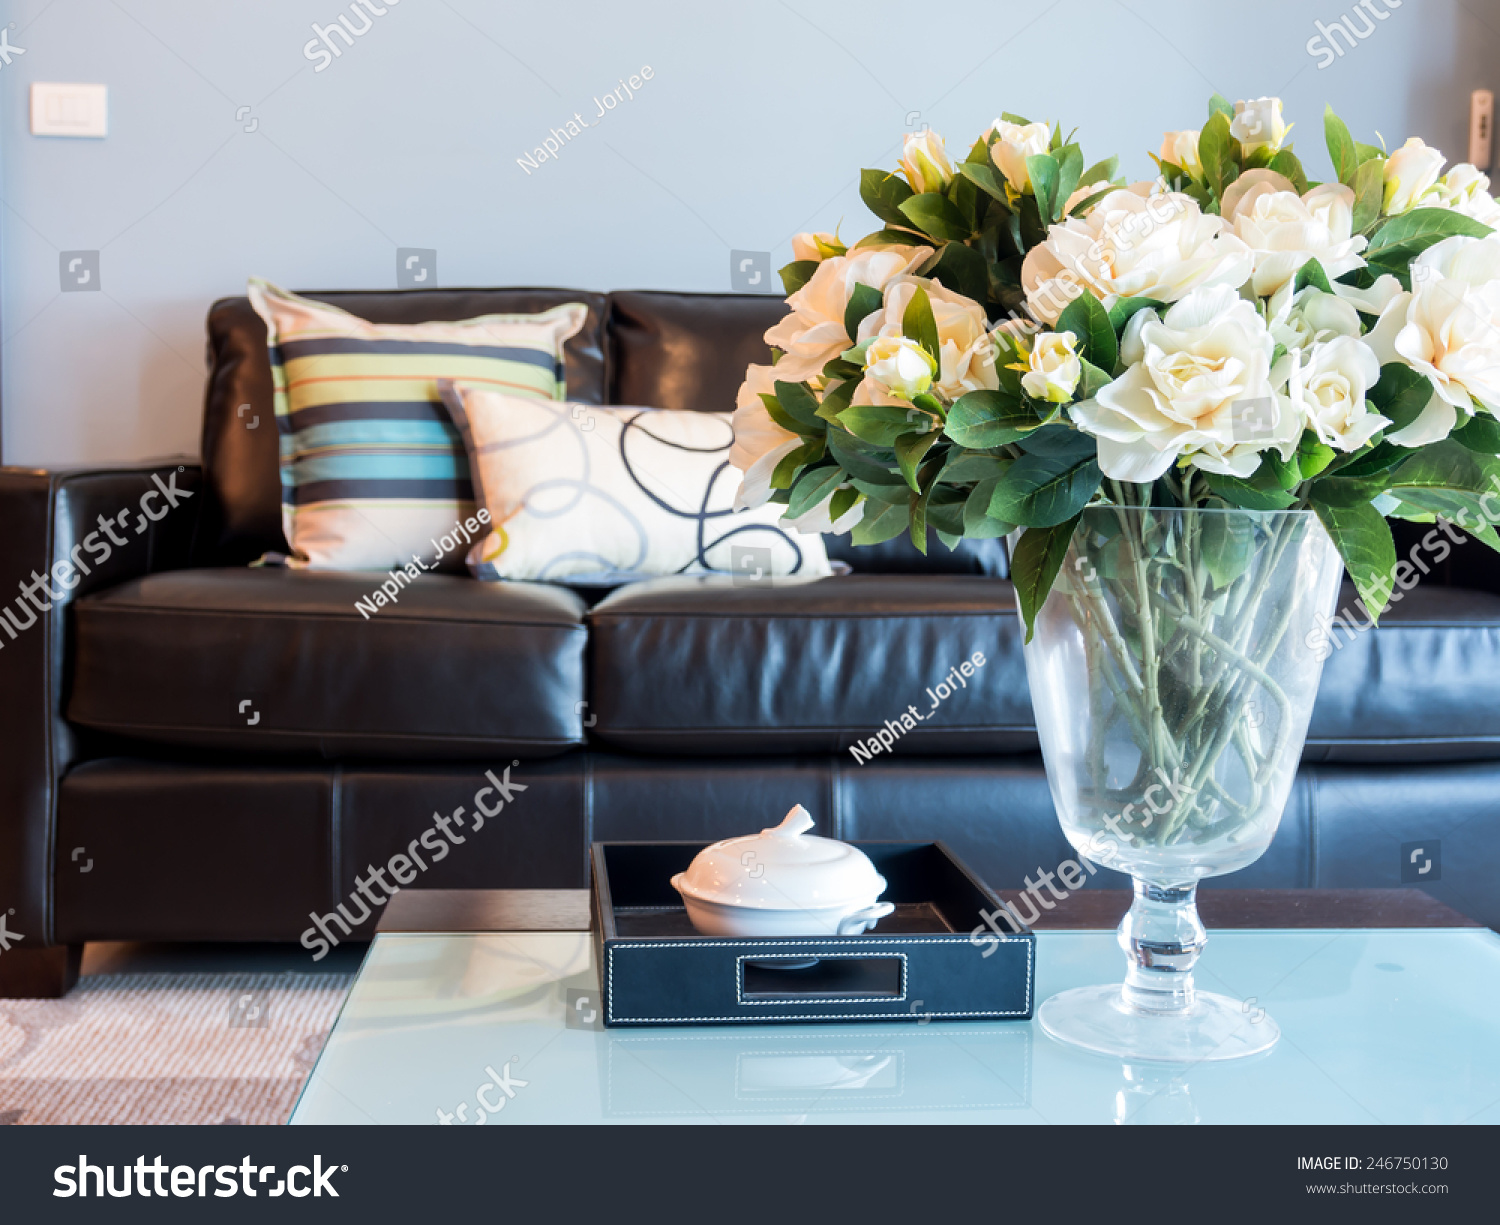 Modern Living Room Interior Design With Artificial Flower Vase Stock Photo 246750130 Shutterstock